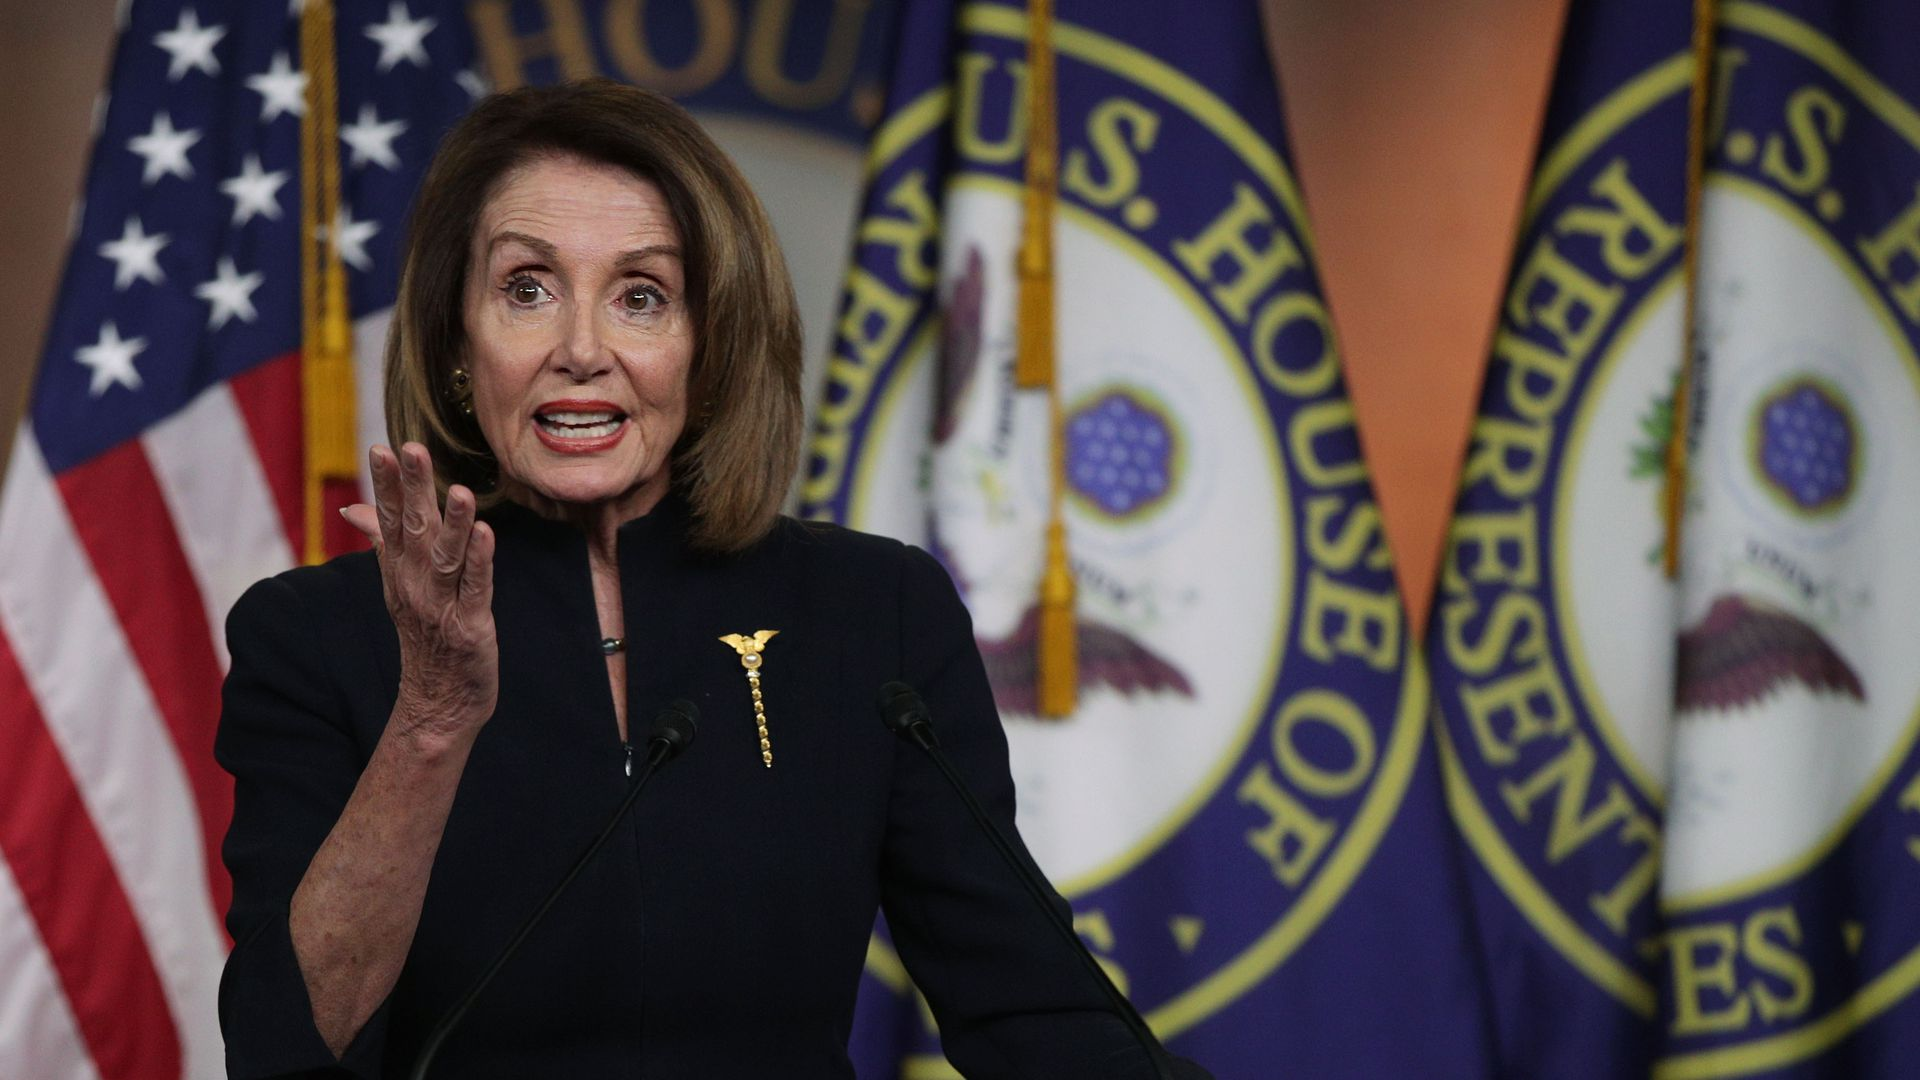 House Speaker Nancy Pelosi gestures with one hand.